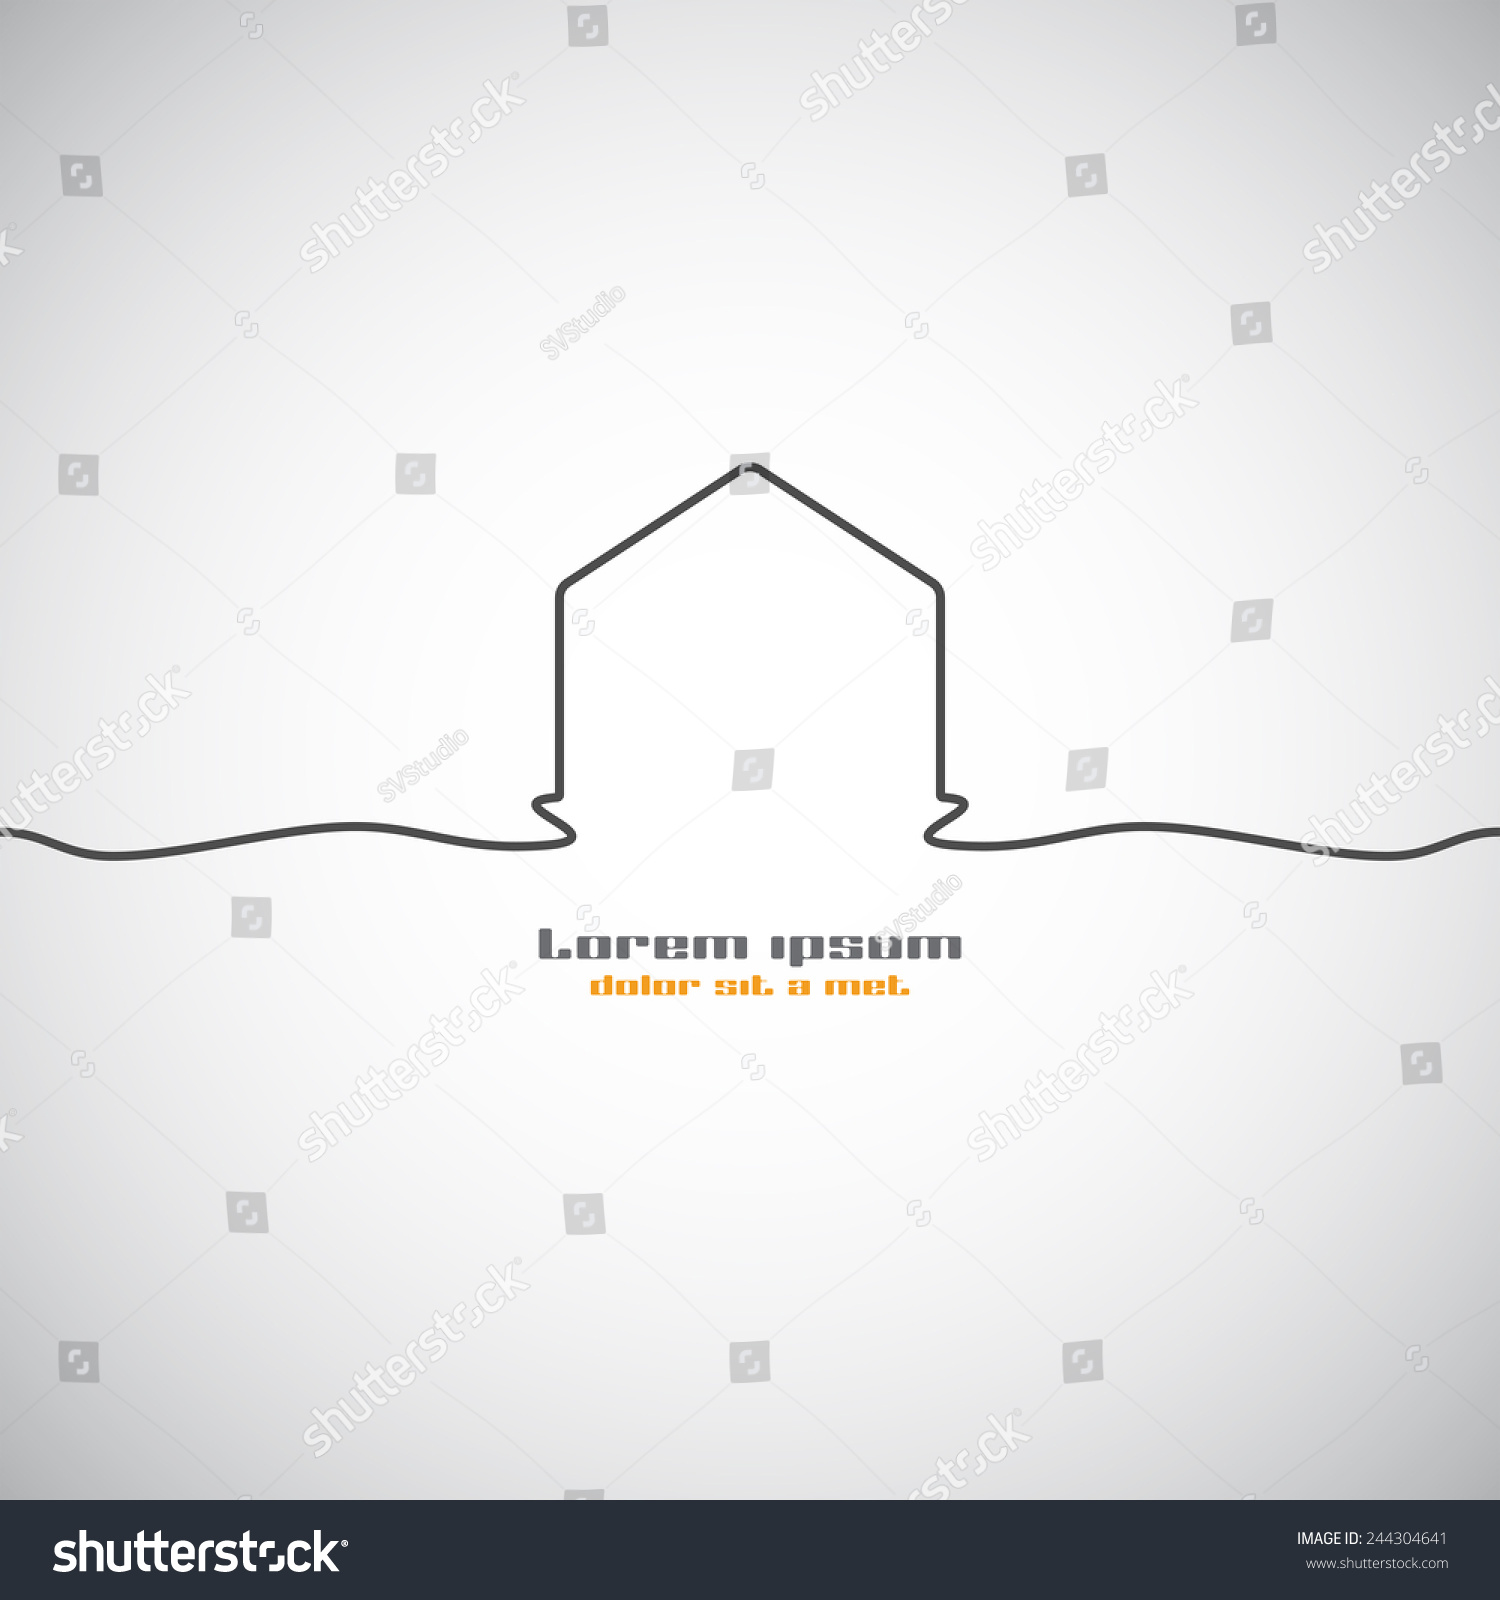 Abstract building silhouette real estate house logo design template icon modern graphics concept element